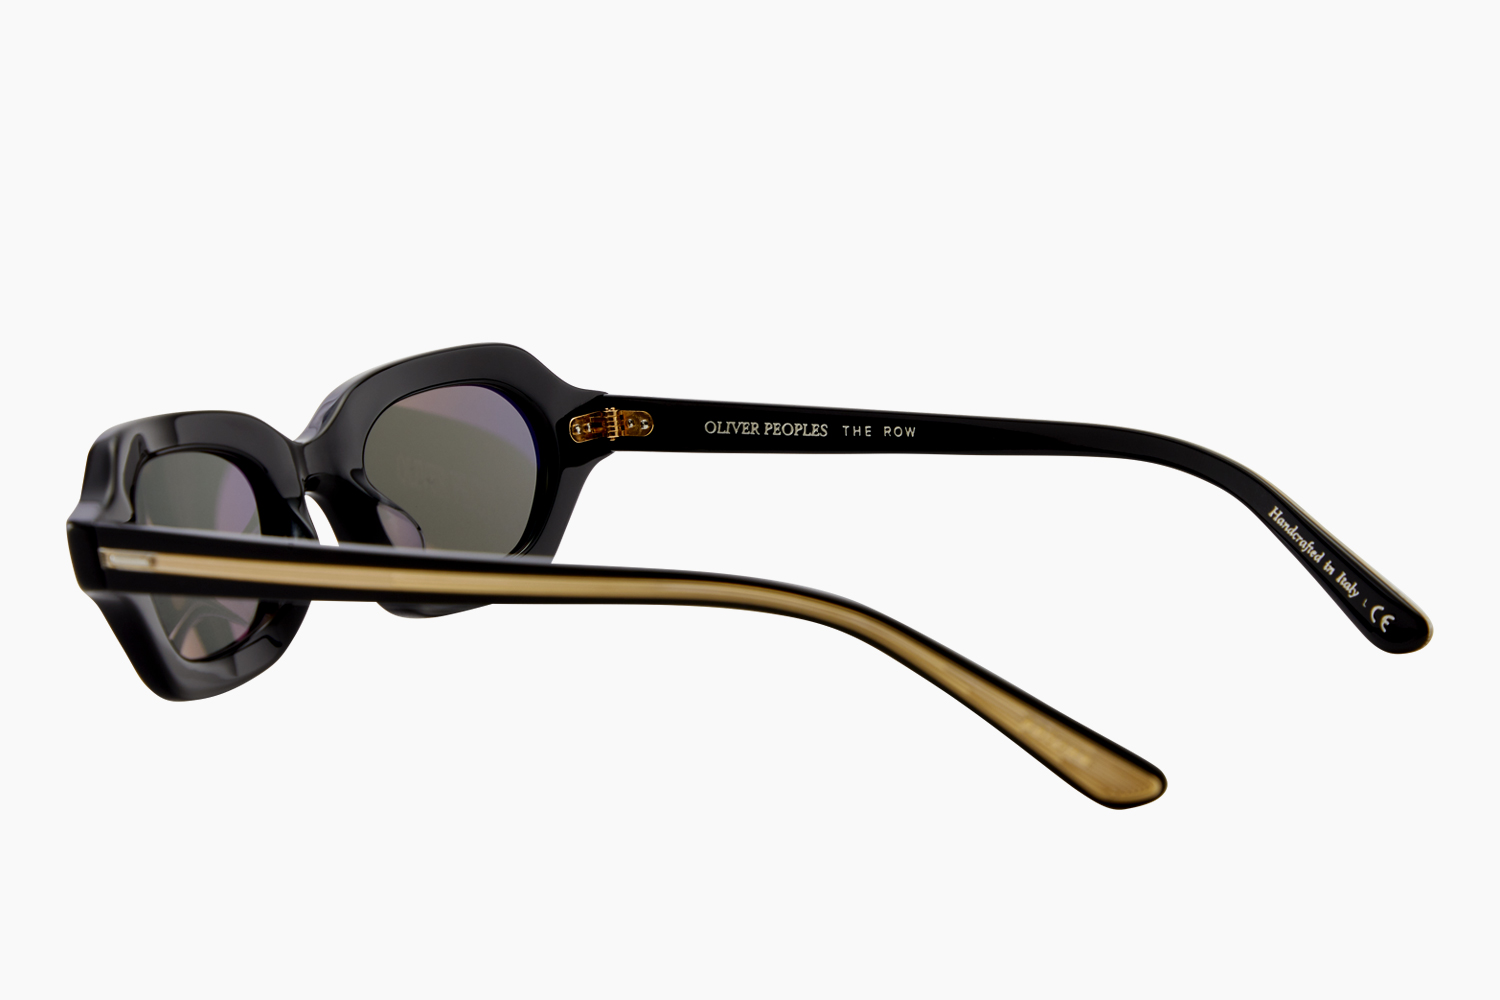 L.A. CC - 1005R5 OLIVER PEOPLES